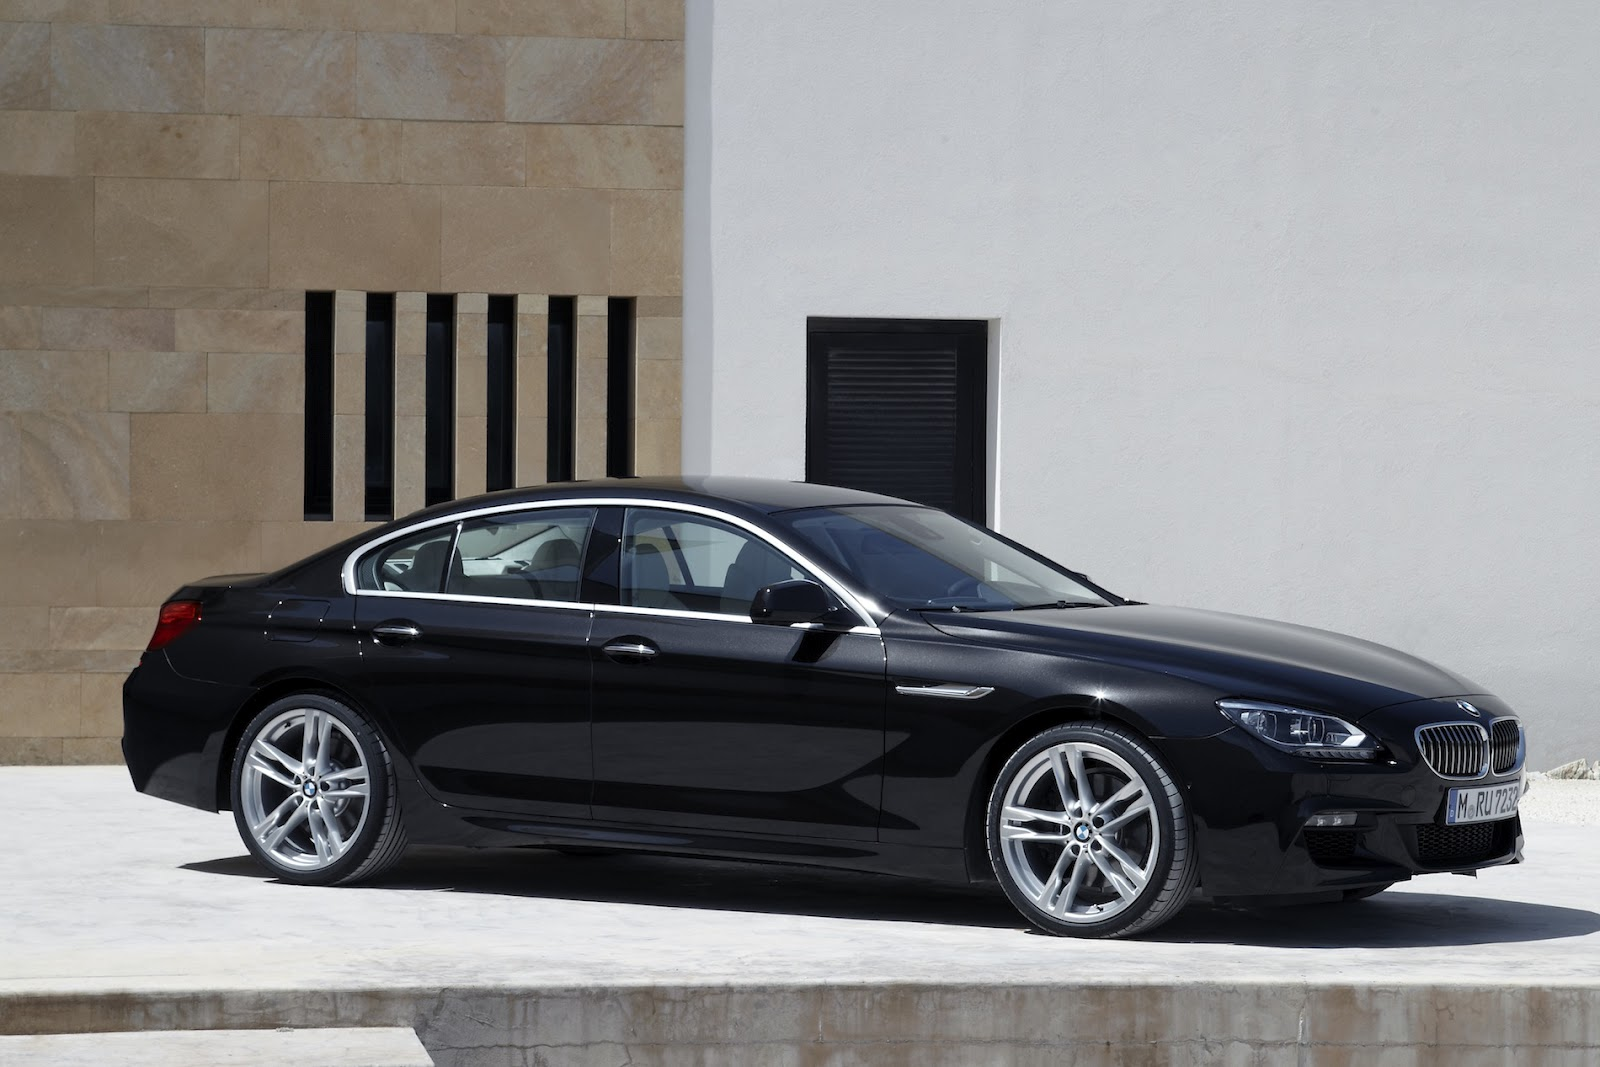 2012 bmw 6 series 650i coupe black sapphire metallic color black - Production 2013 Bmw 650i Gran Coupe Gallery